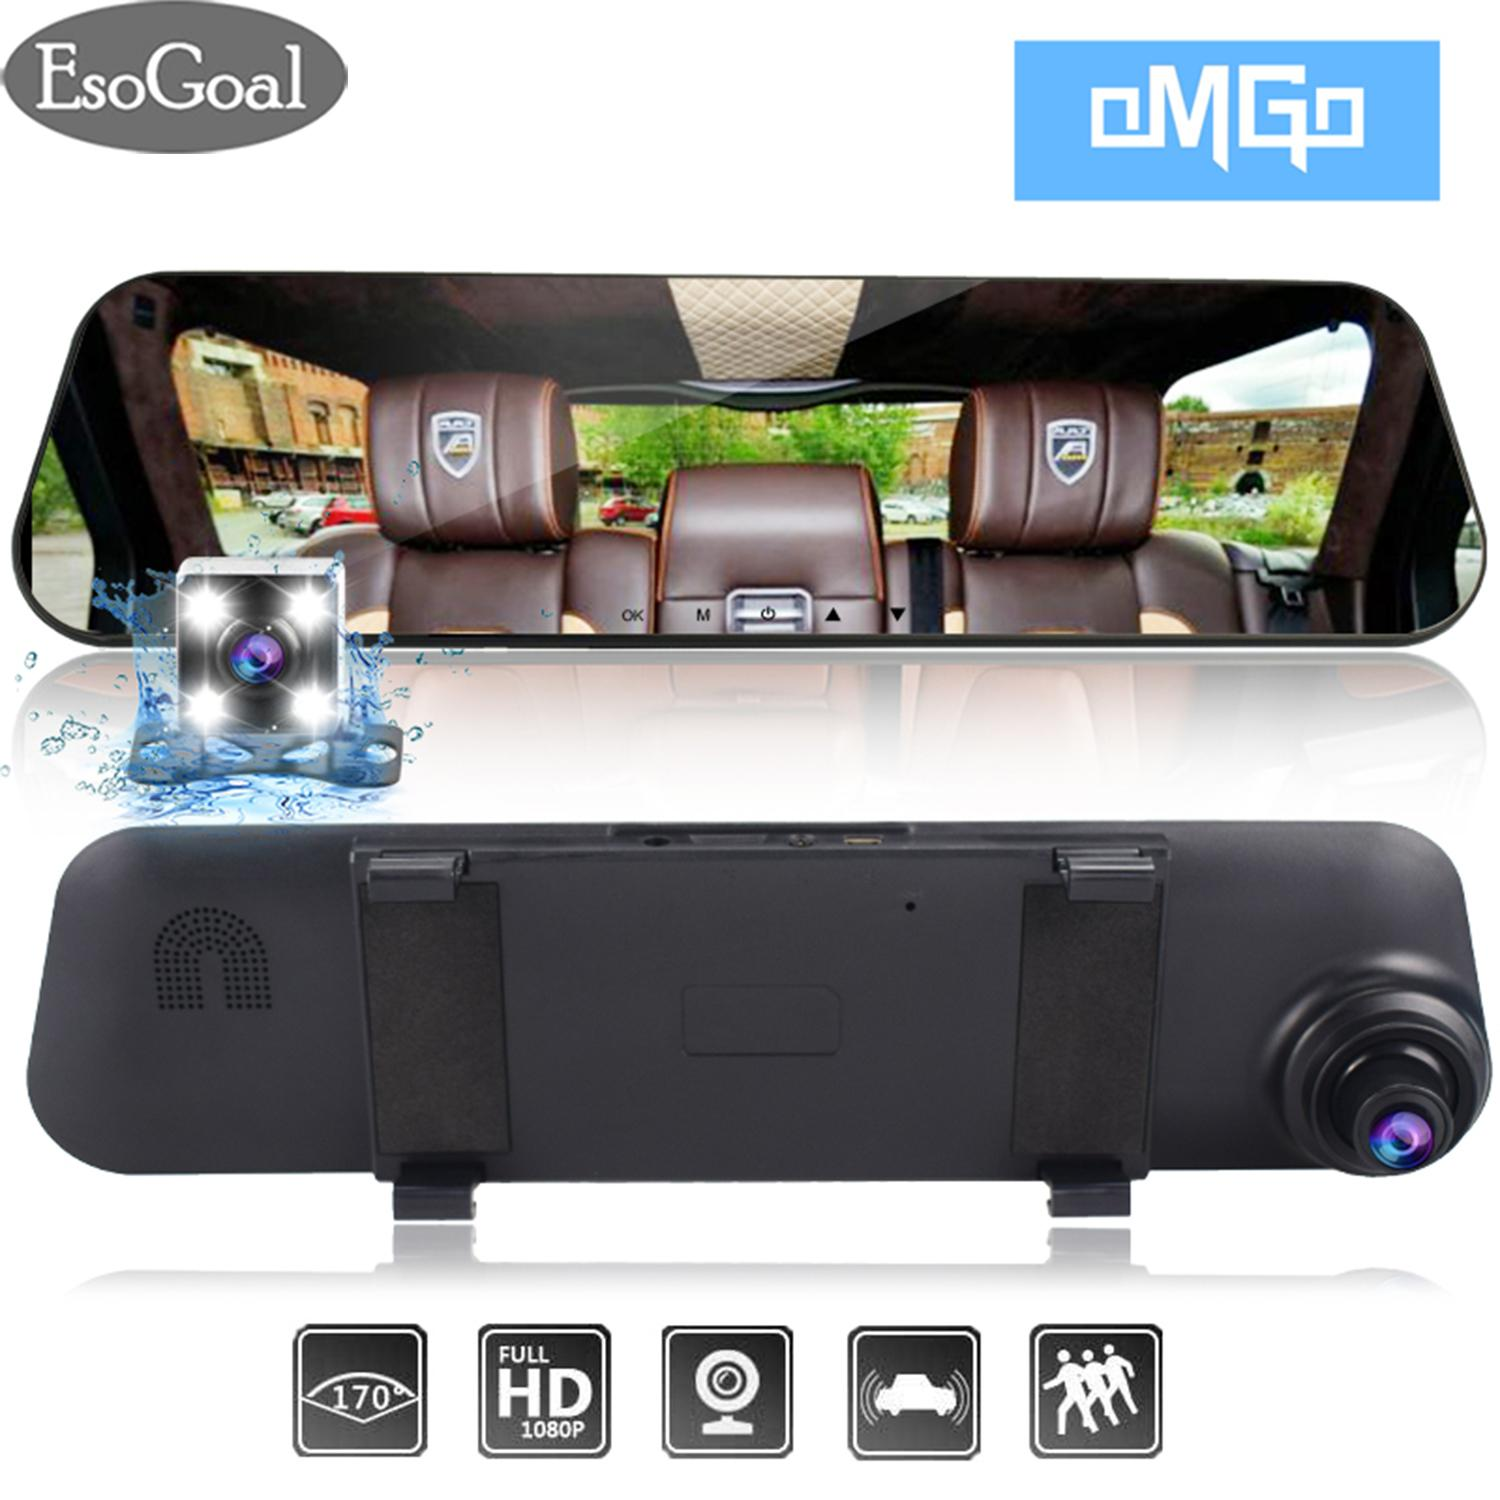 "EsoGoal กล้องติดรถยนต์ Car DVR, Dash Cam Mirror Rear View Mirror Camera, Car Video Recorder ,4.3"" 1080P HD TFT Screen,140° Wide Angle Front and 120° Rear Dual Lens, G Sensor, Parking Monitor, Loop Recording, Support 32GB Micro SD Card"